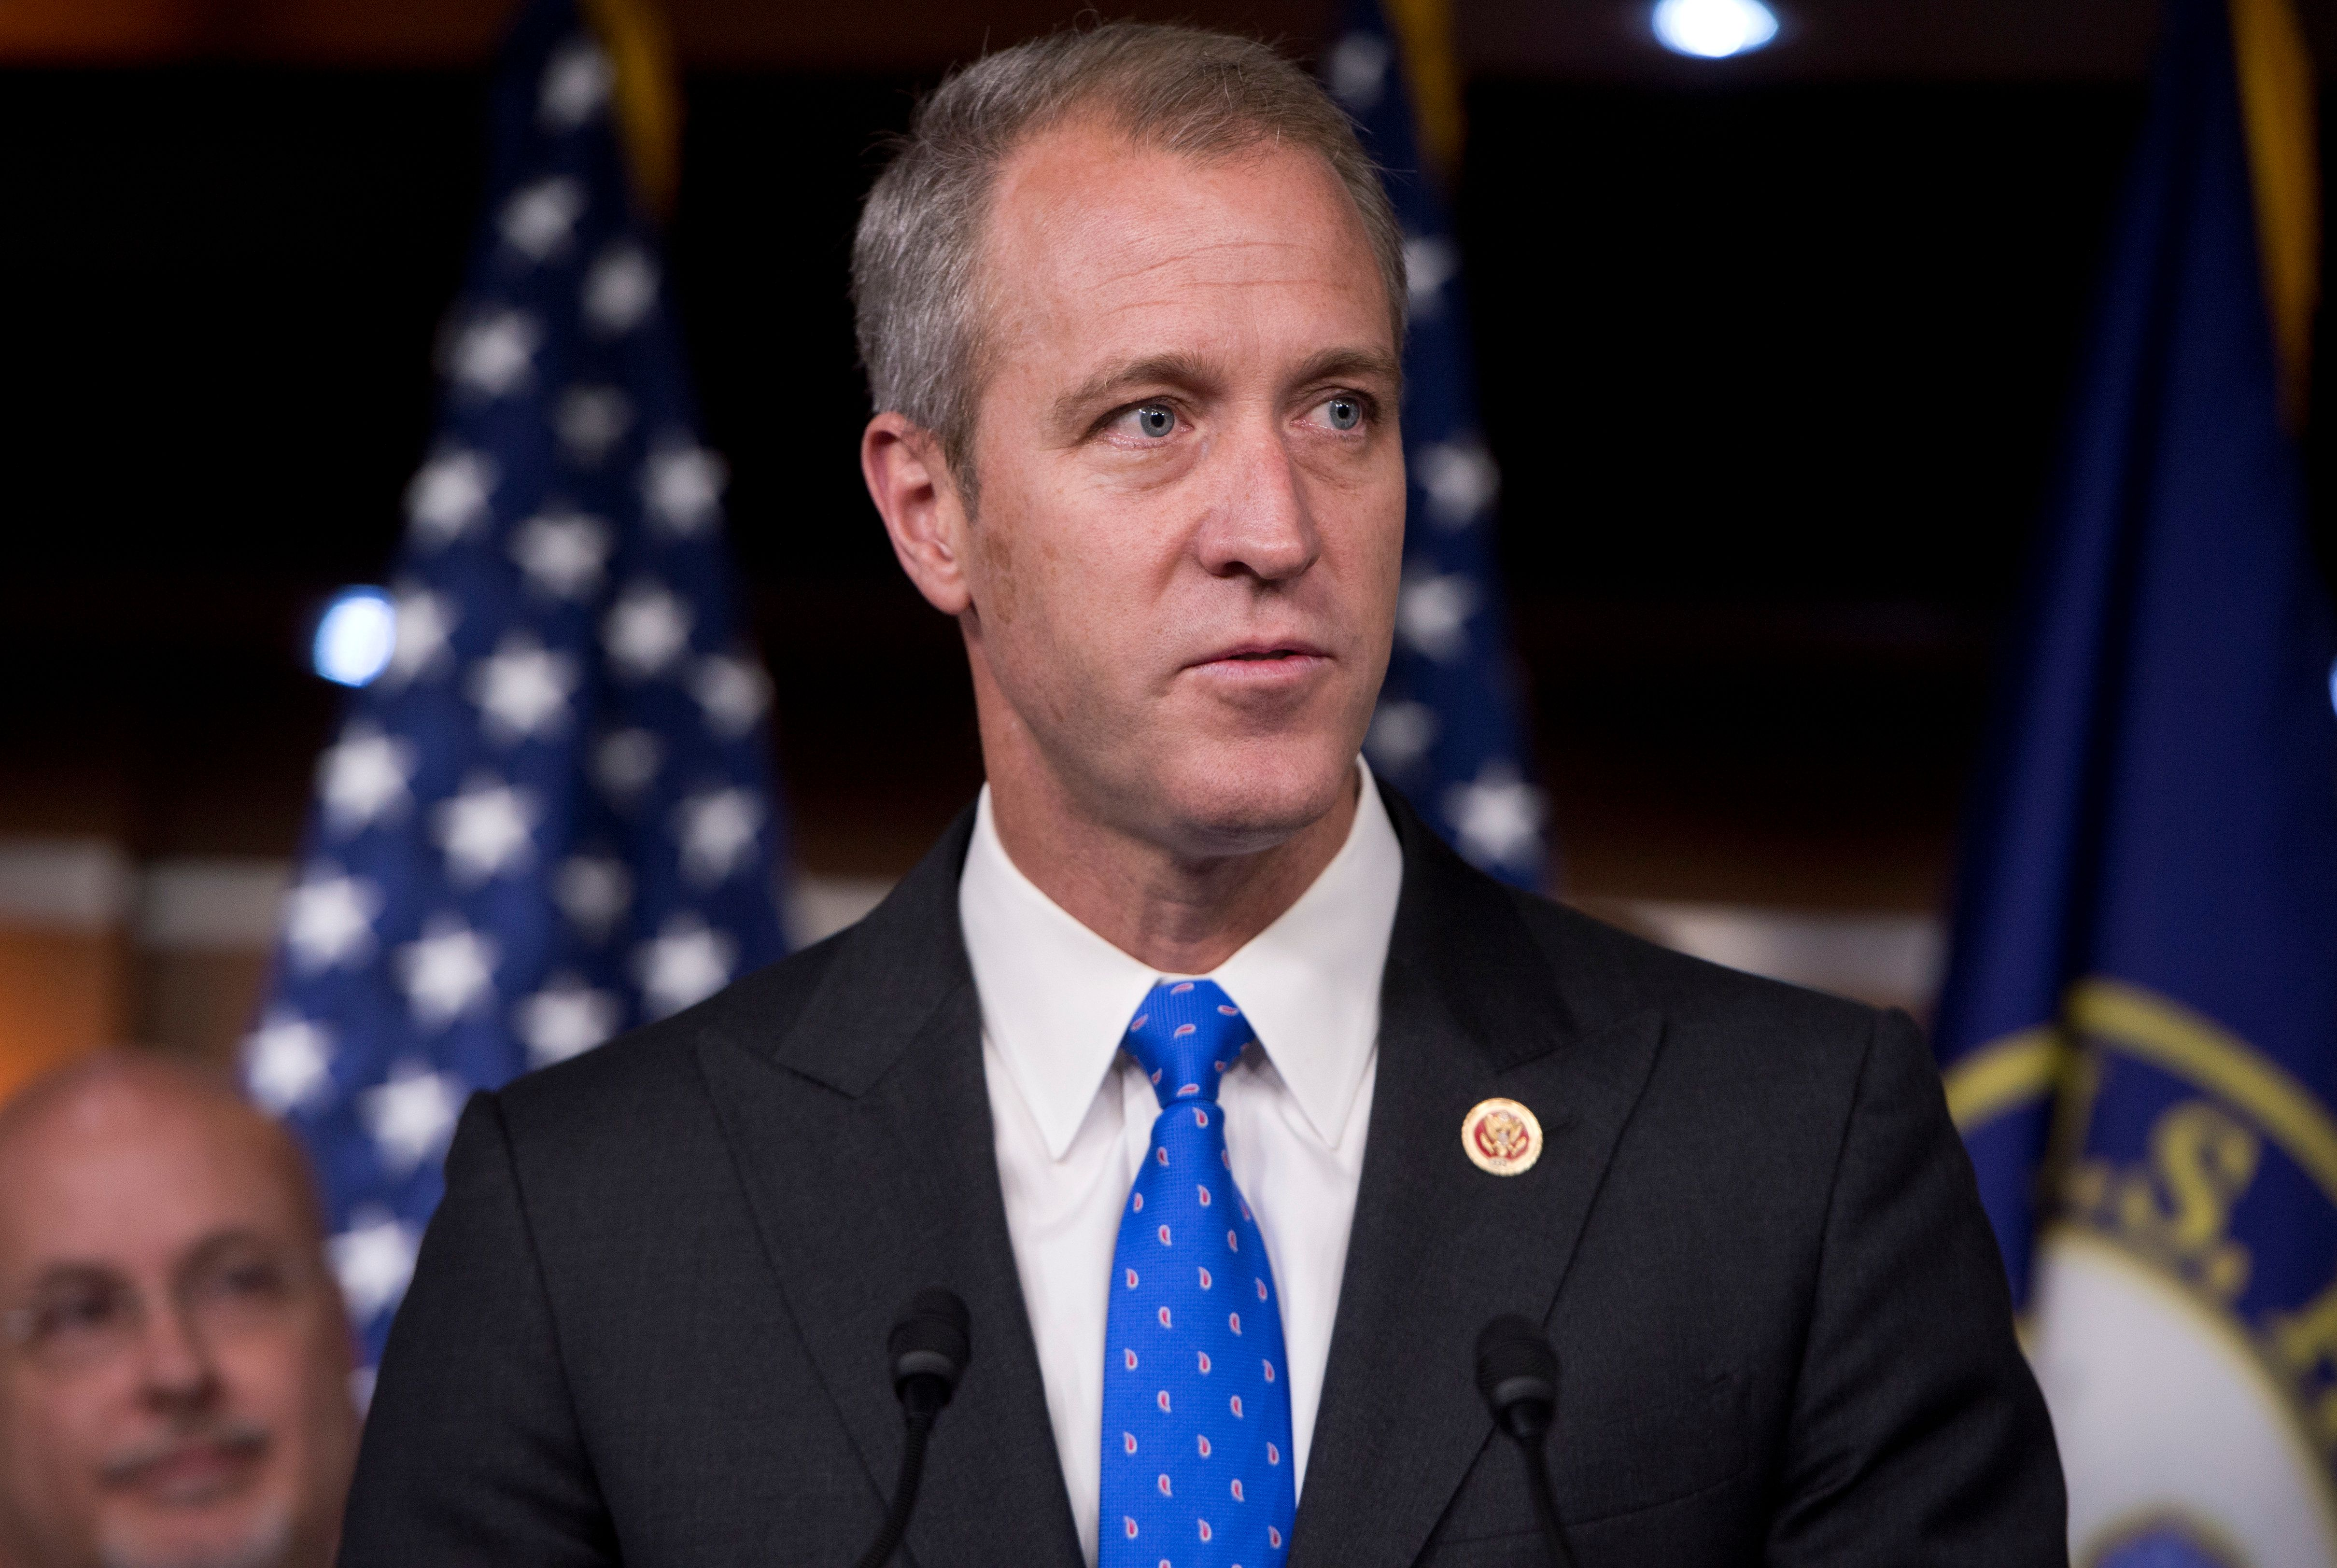 Rep. Sean Patrick Maloney (D-N.Y.) had been raising funds for his re-election to the U.S. House but later decided to run for